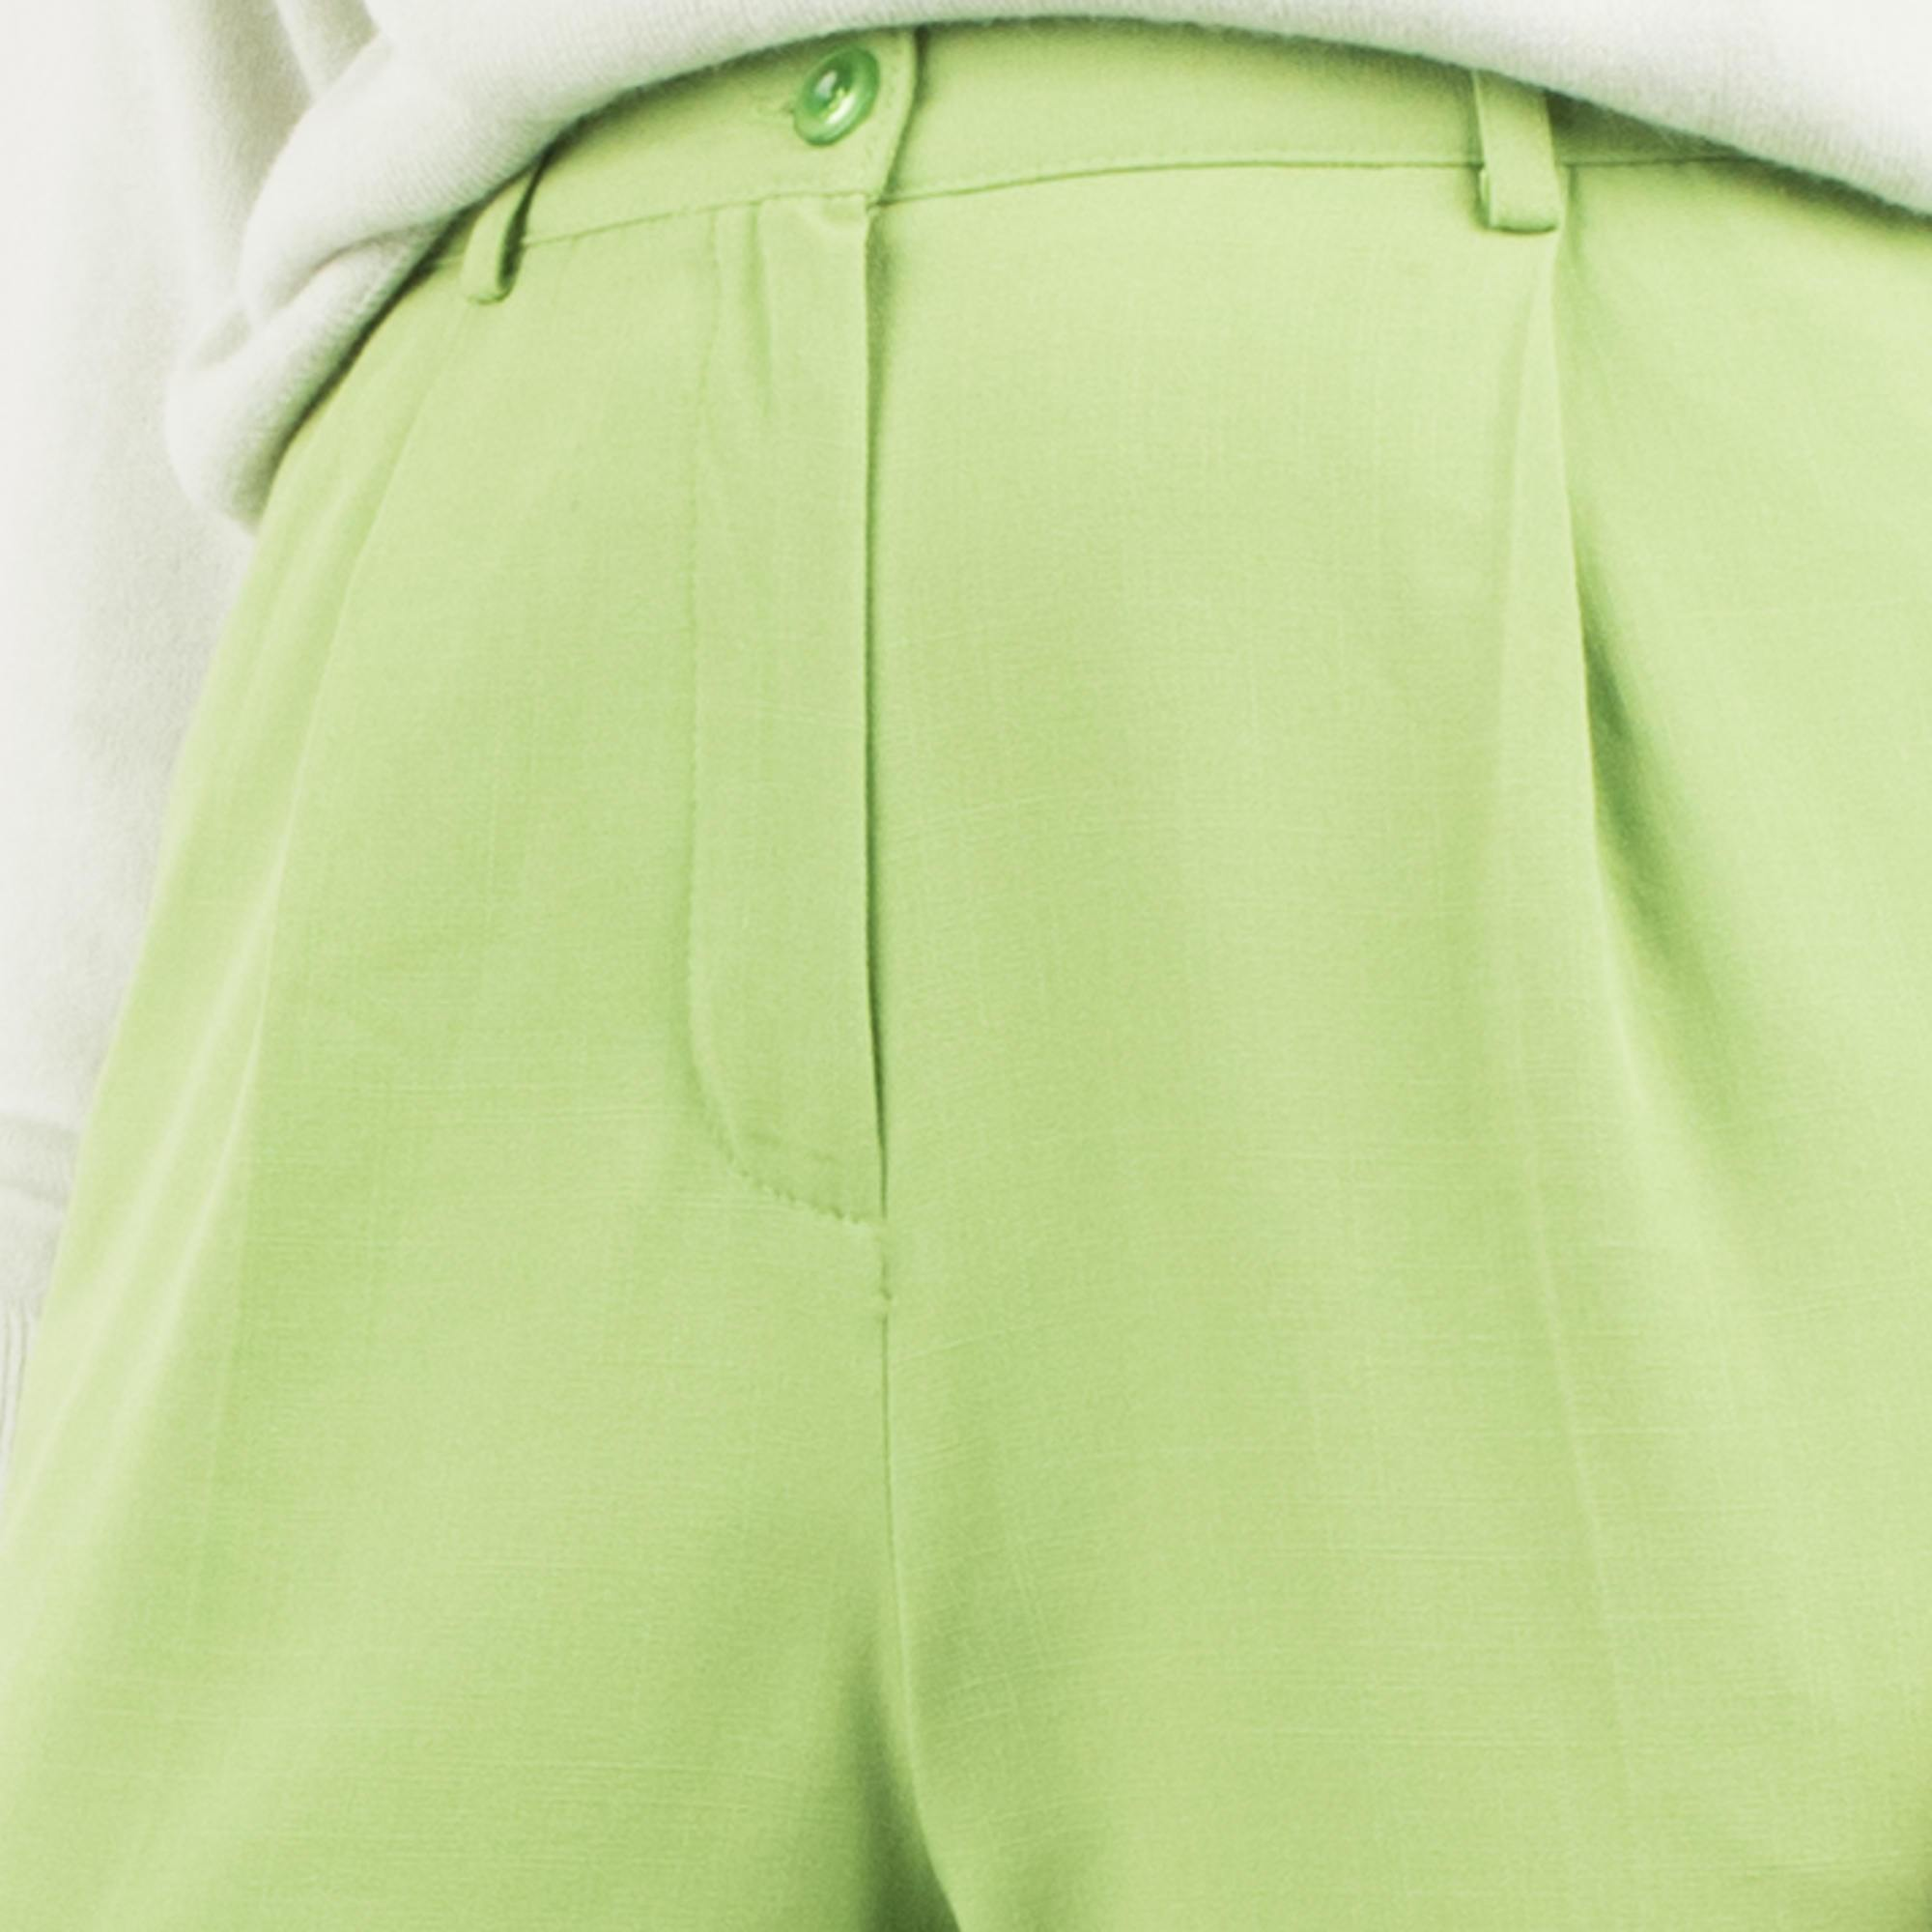 Vintage Lime Green Tapered Trousers / S - Closed Caption